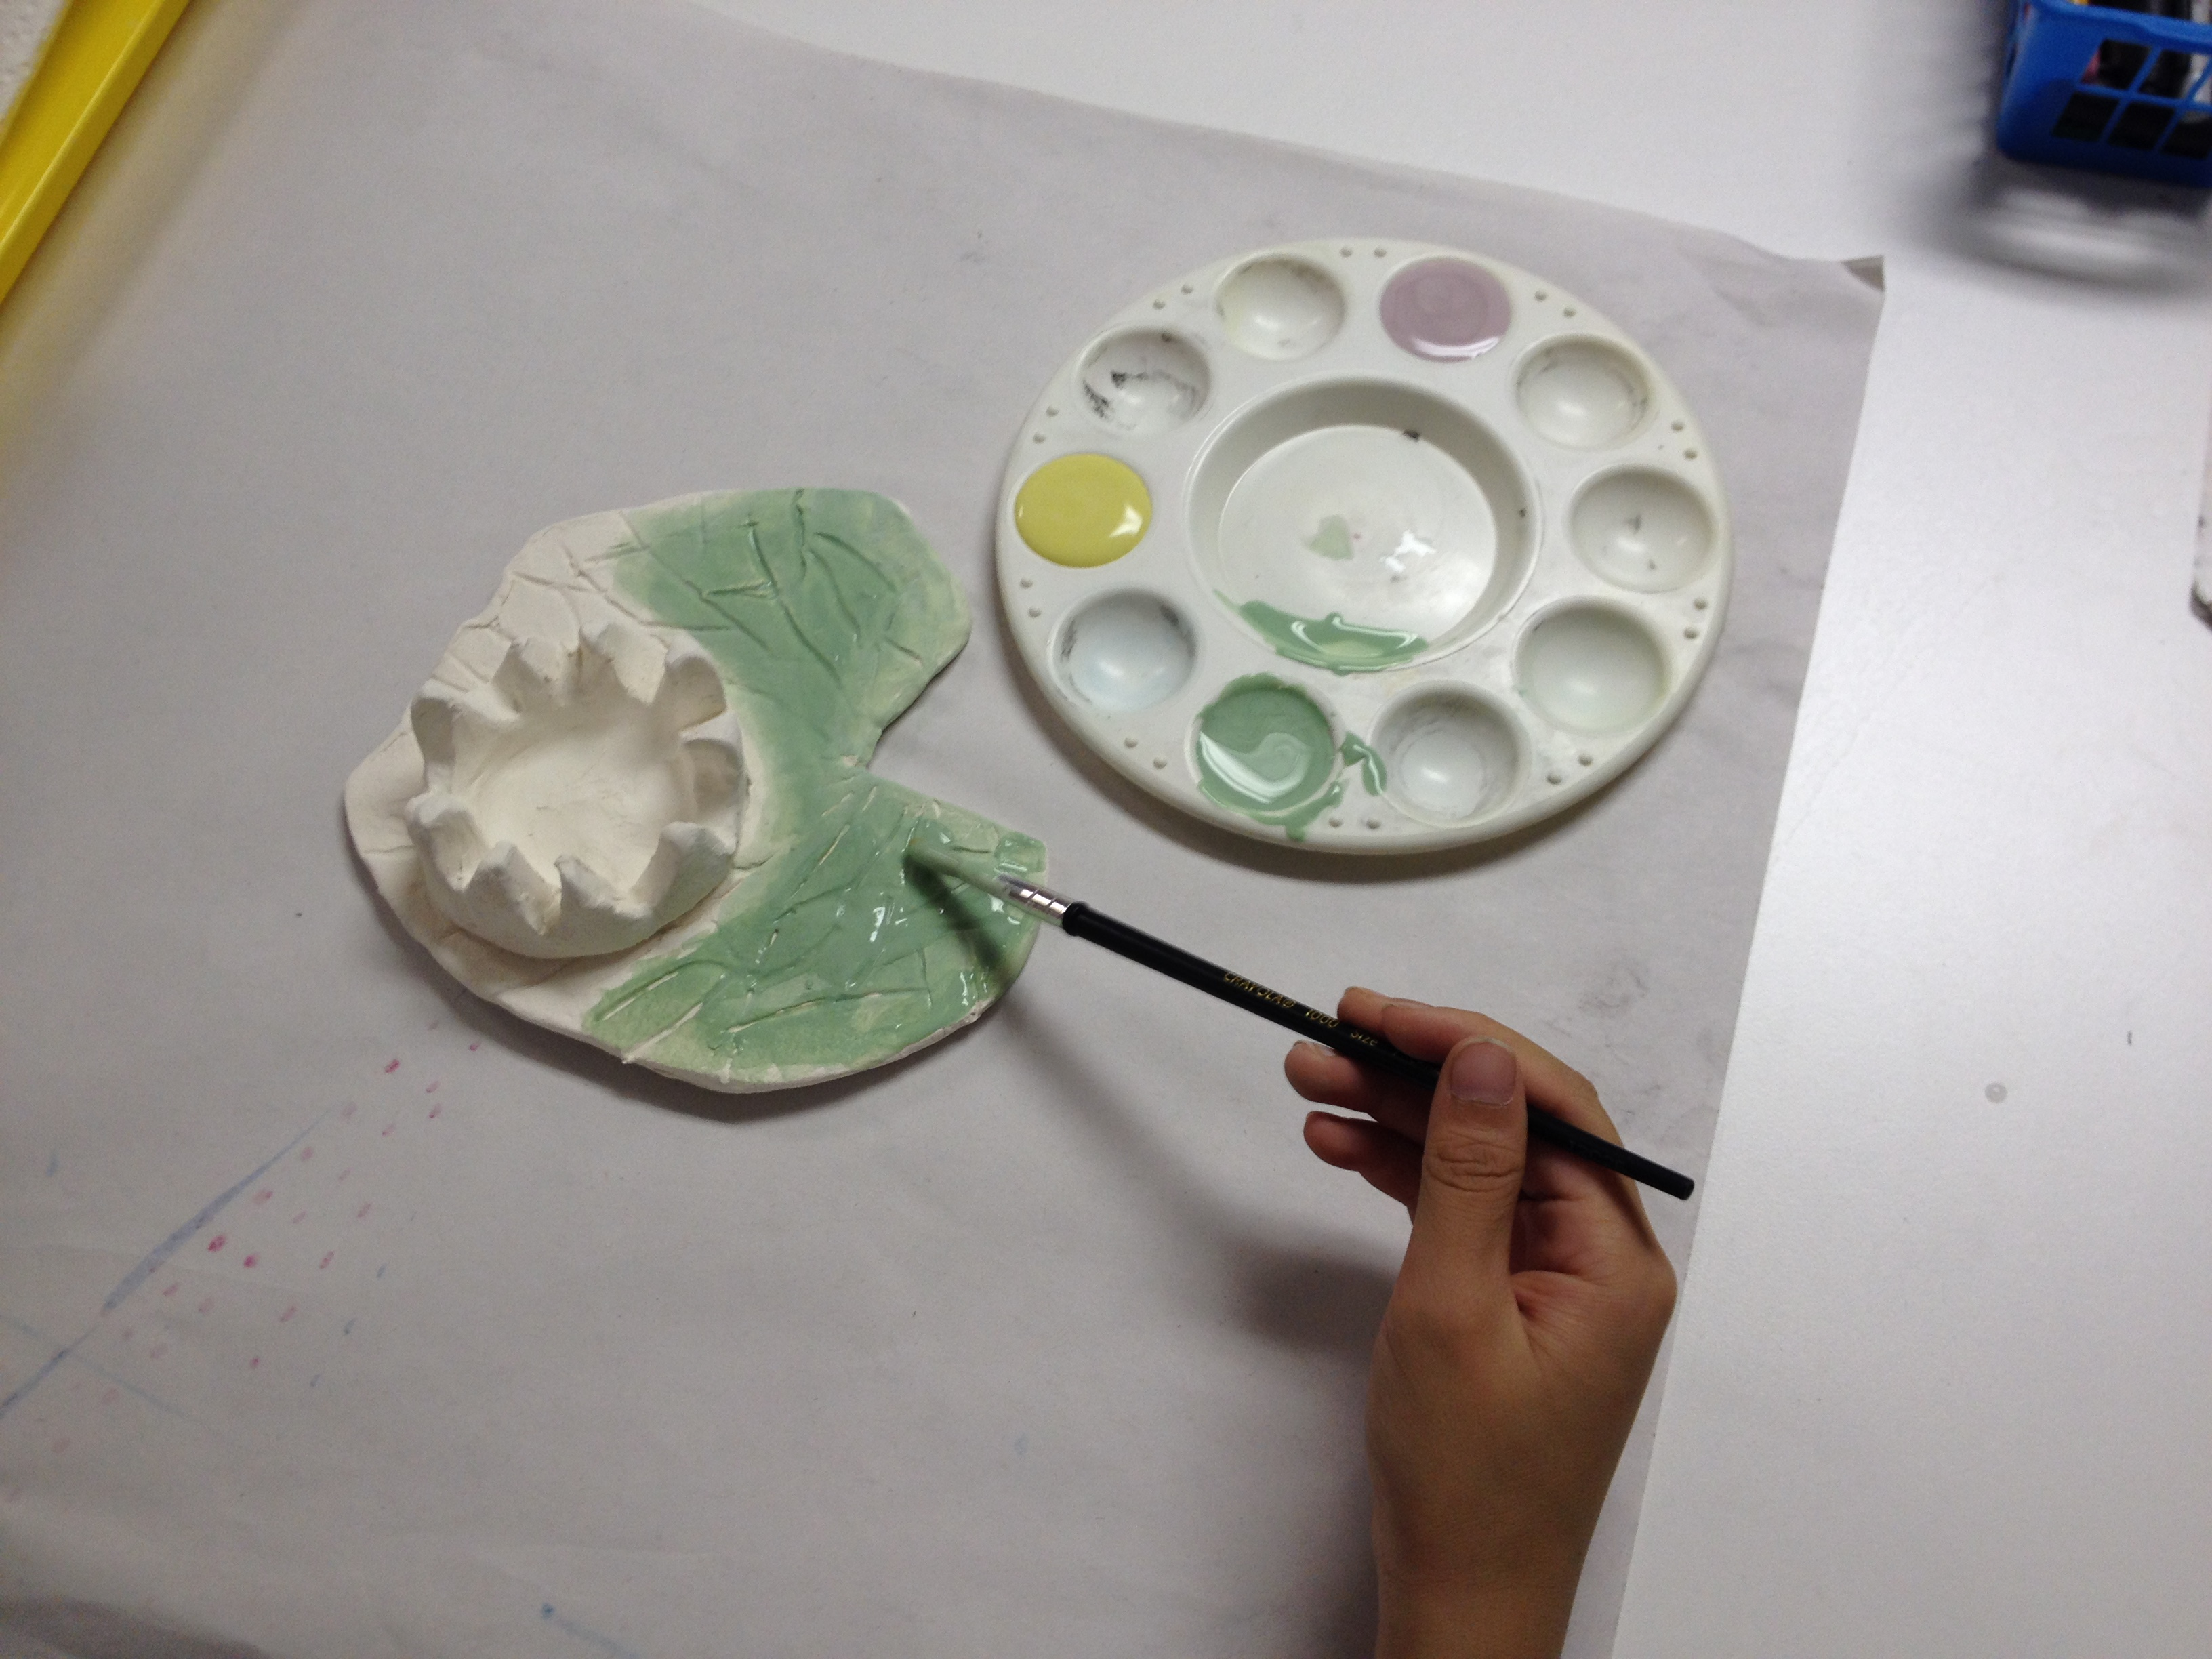 Lilypad Amp Flower Slab And Pinch Pot Clay Art Lesson